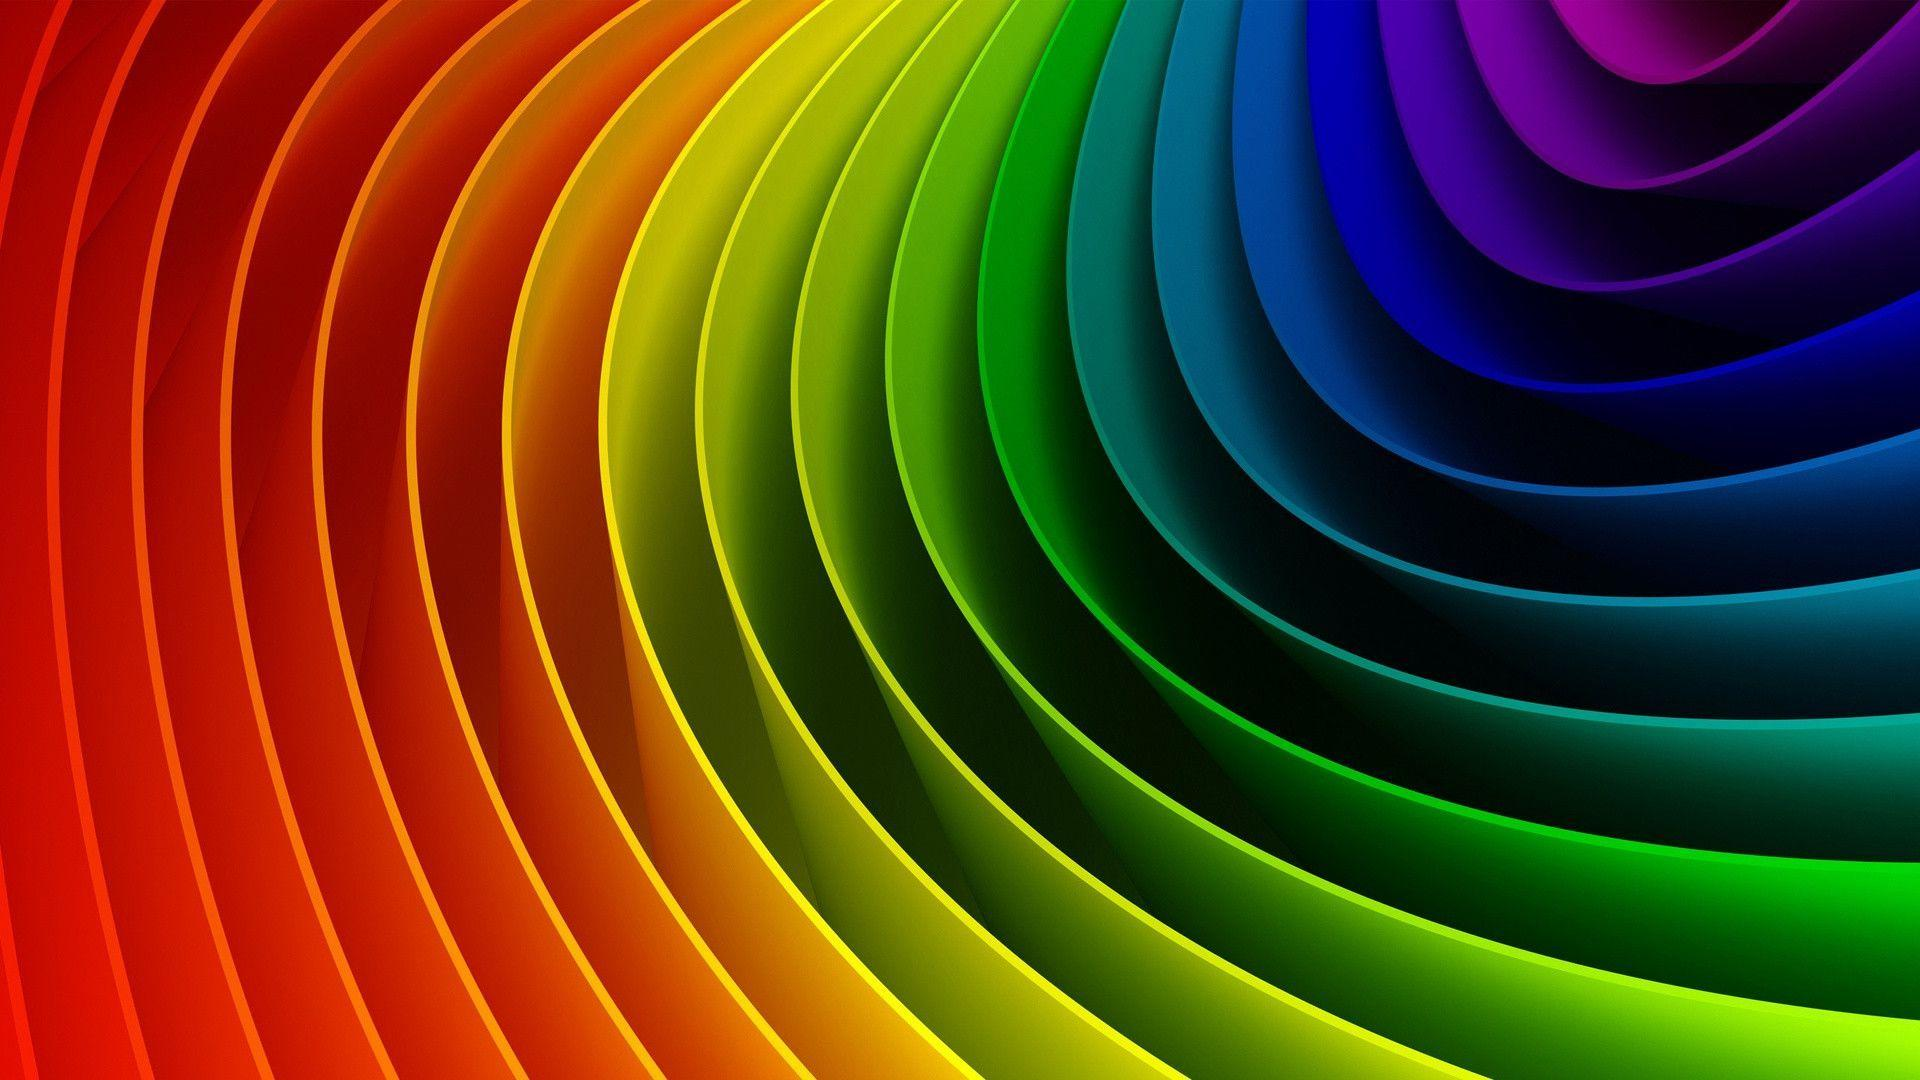 awesome rainbow wallpaper backgrounds - photo #9